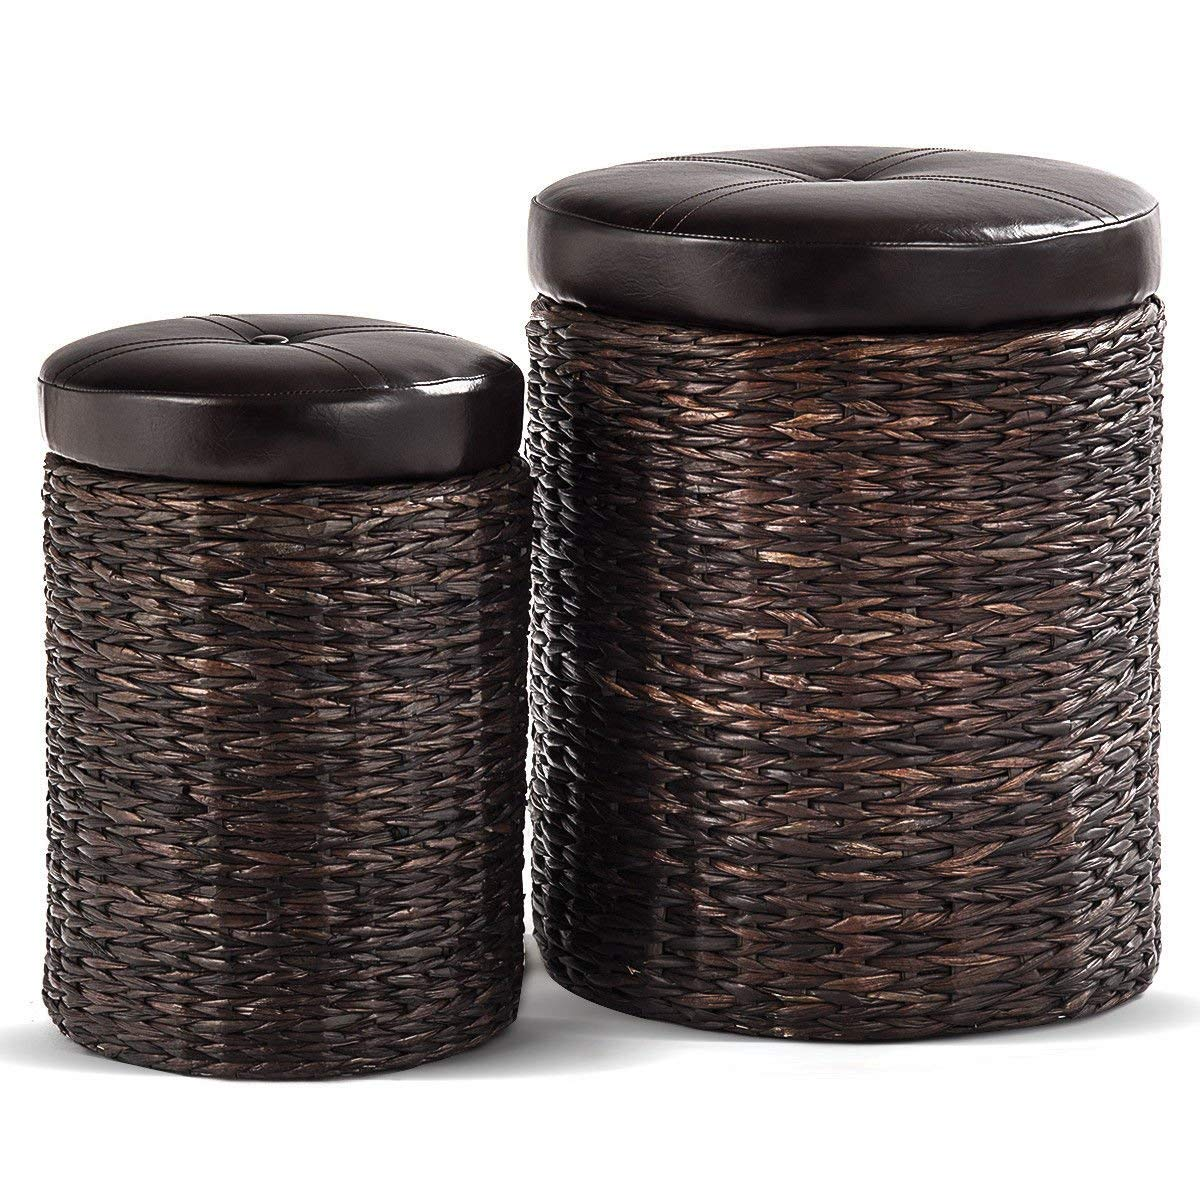 Globe House Products GHP 2-Pcs 330-Lbs Capacity Brown Rattan Wicker Foot Rest Stools with Hidden Storage